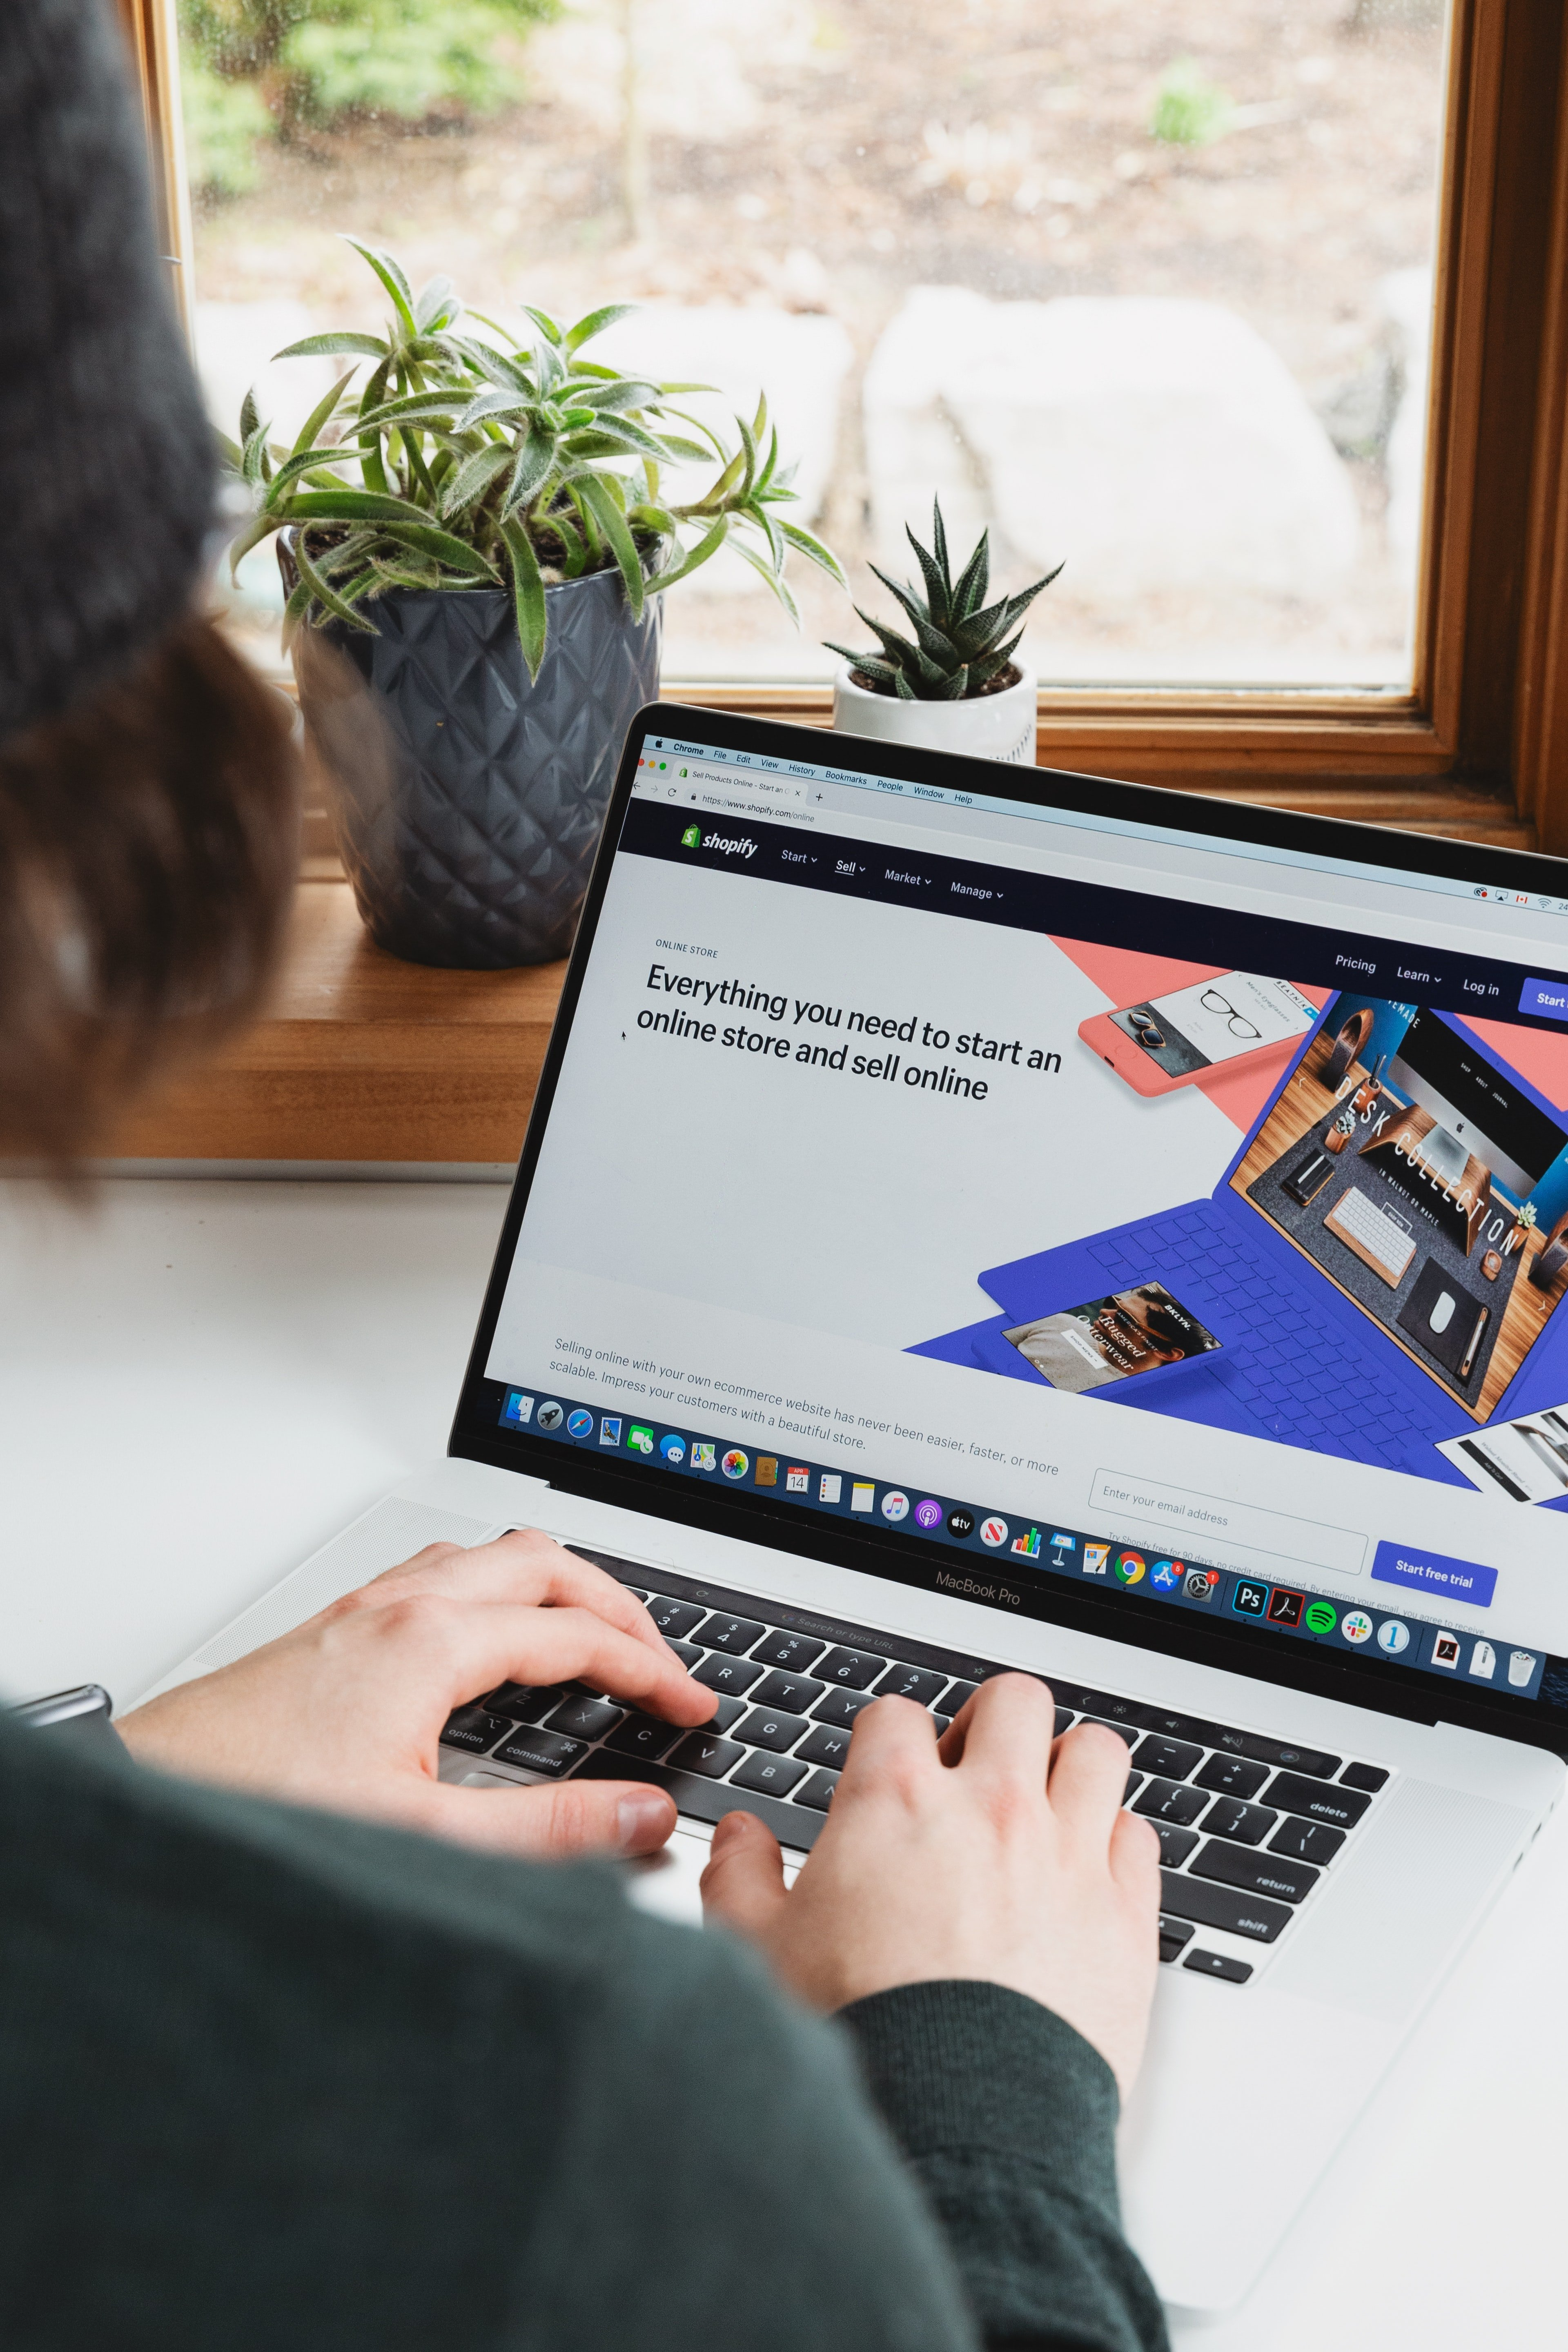 COVID-19 Drives E-Commerce Growth for Brick and Mortar Retailers